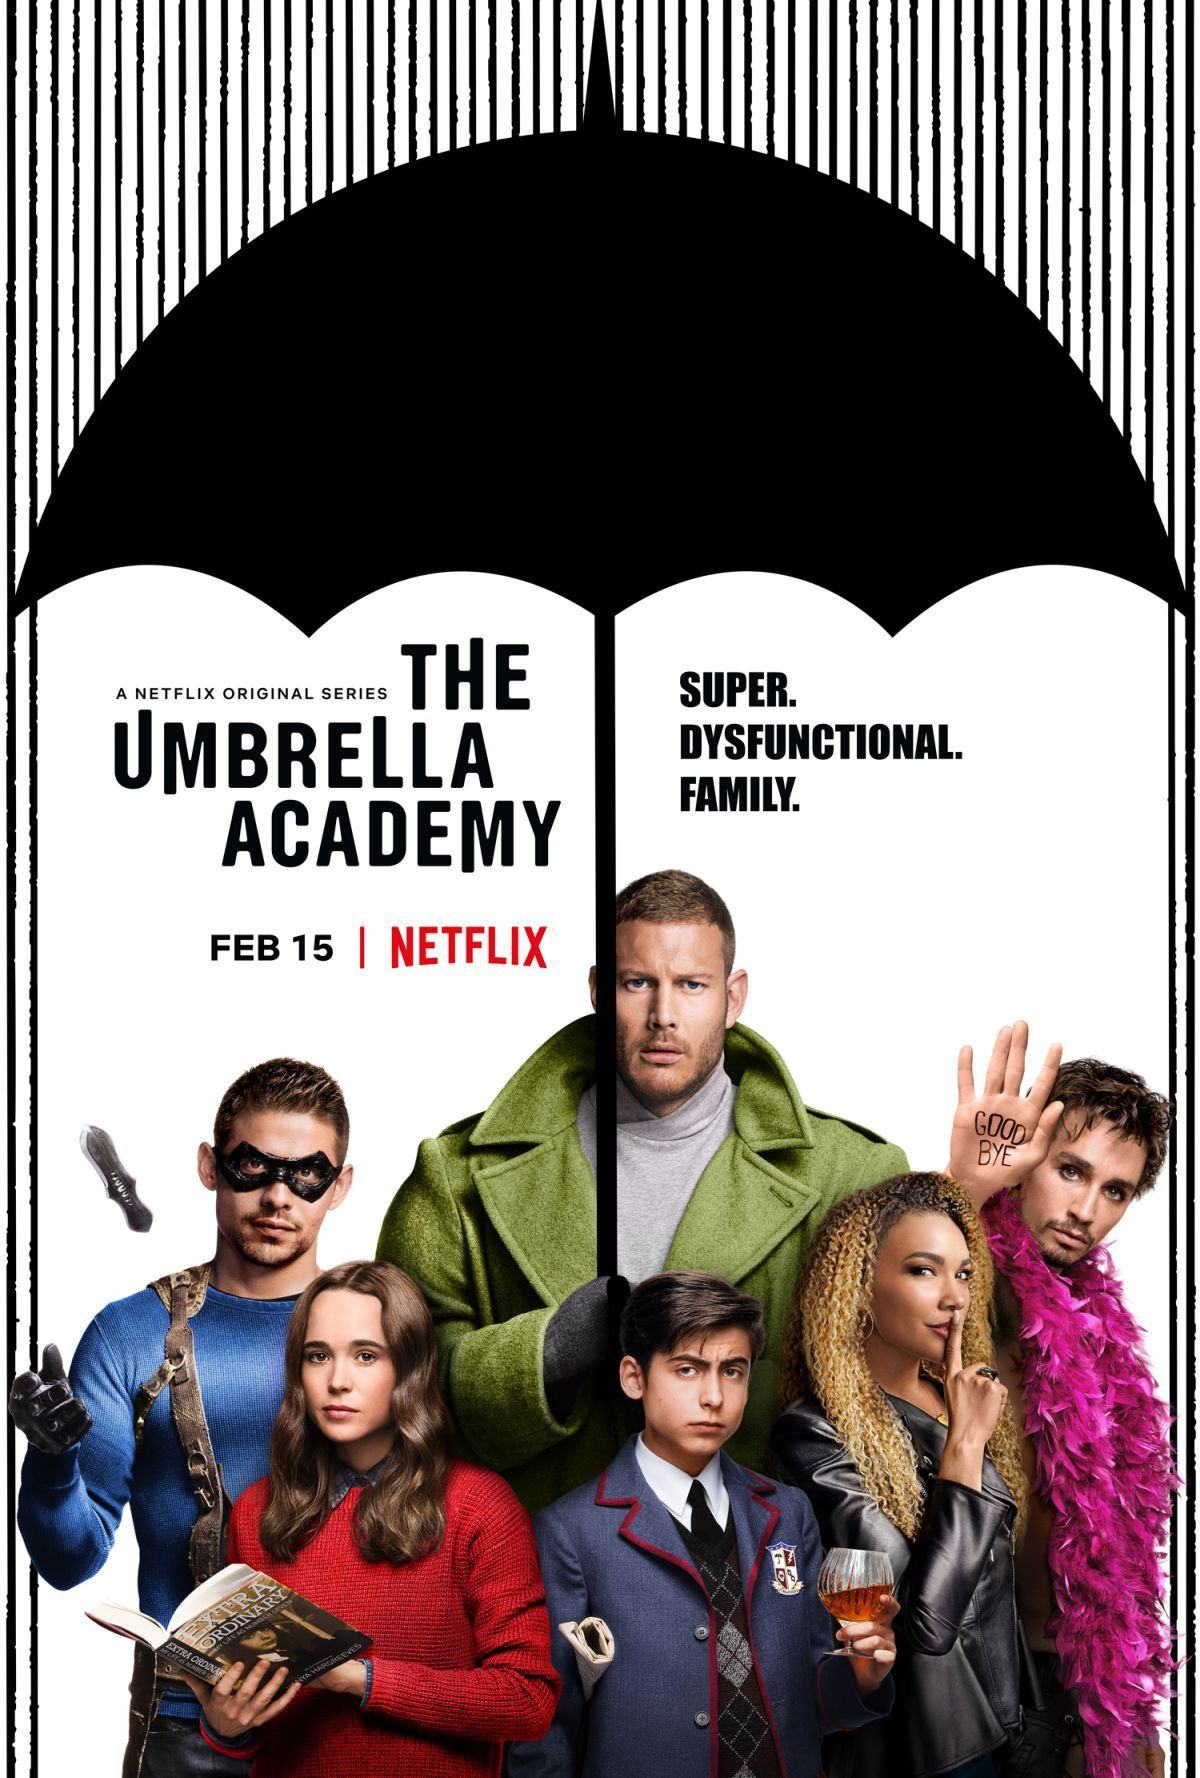 The Umbrella Academy S01 E05 Cut